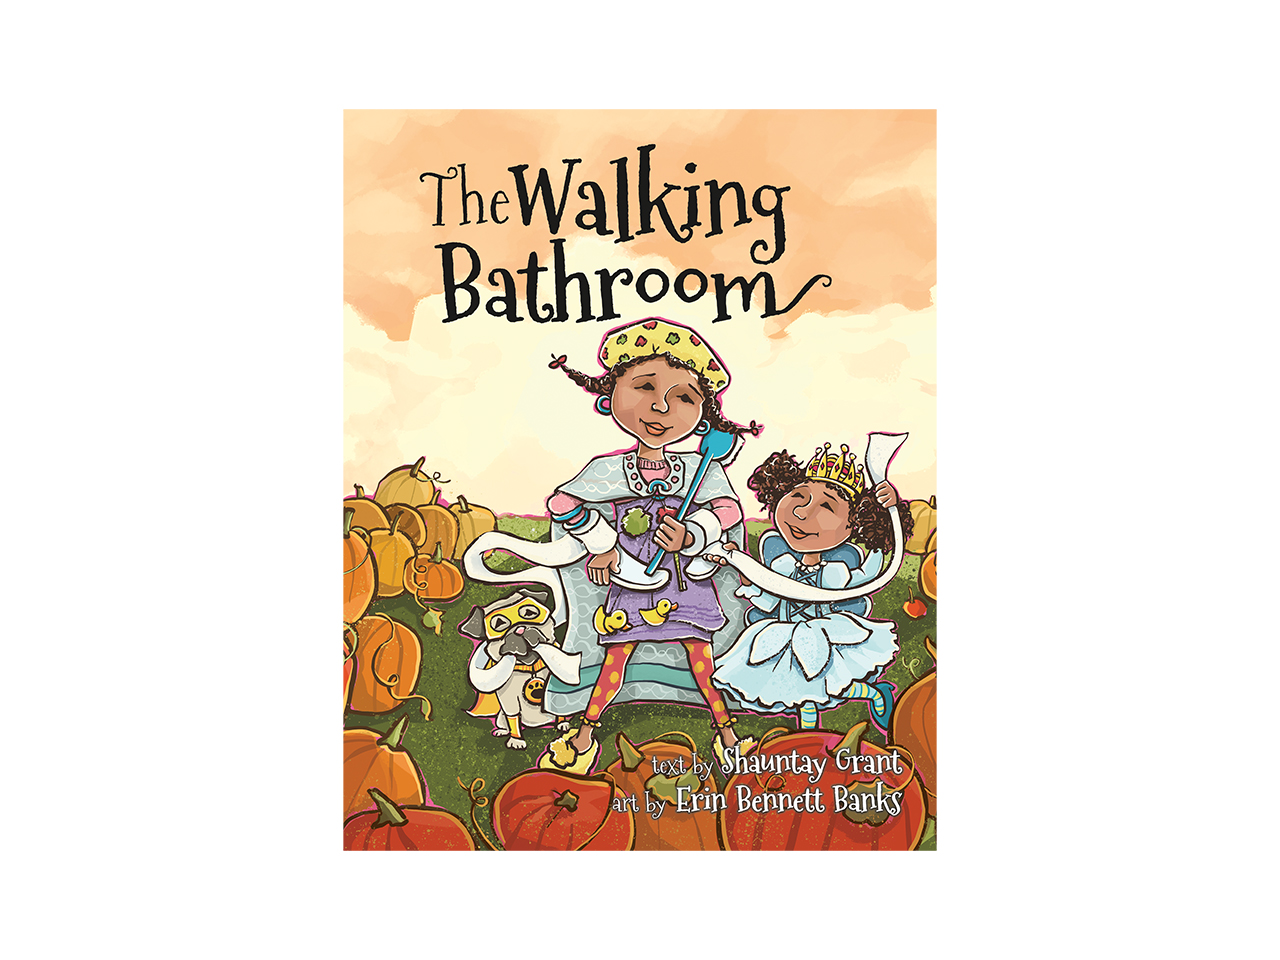 Cover art for the Walking Bathroom showing two illustrated kids dressed up in costumes walking through a pumpkin patch